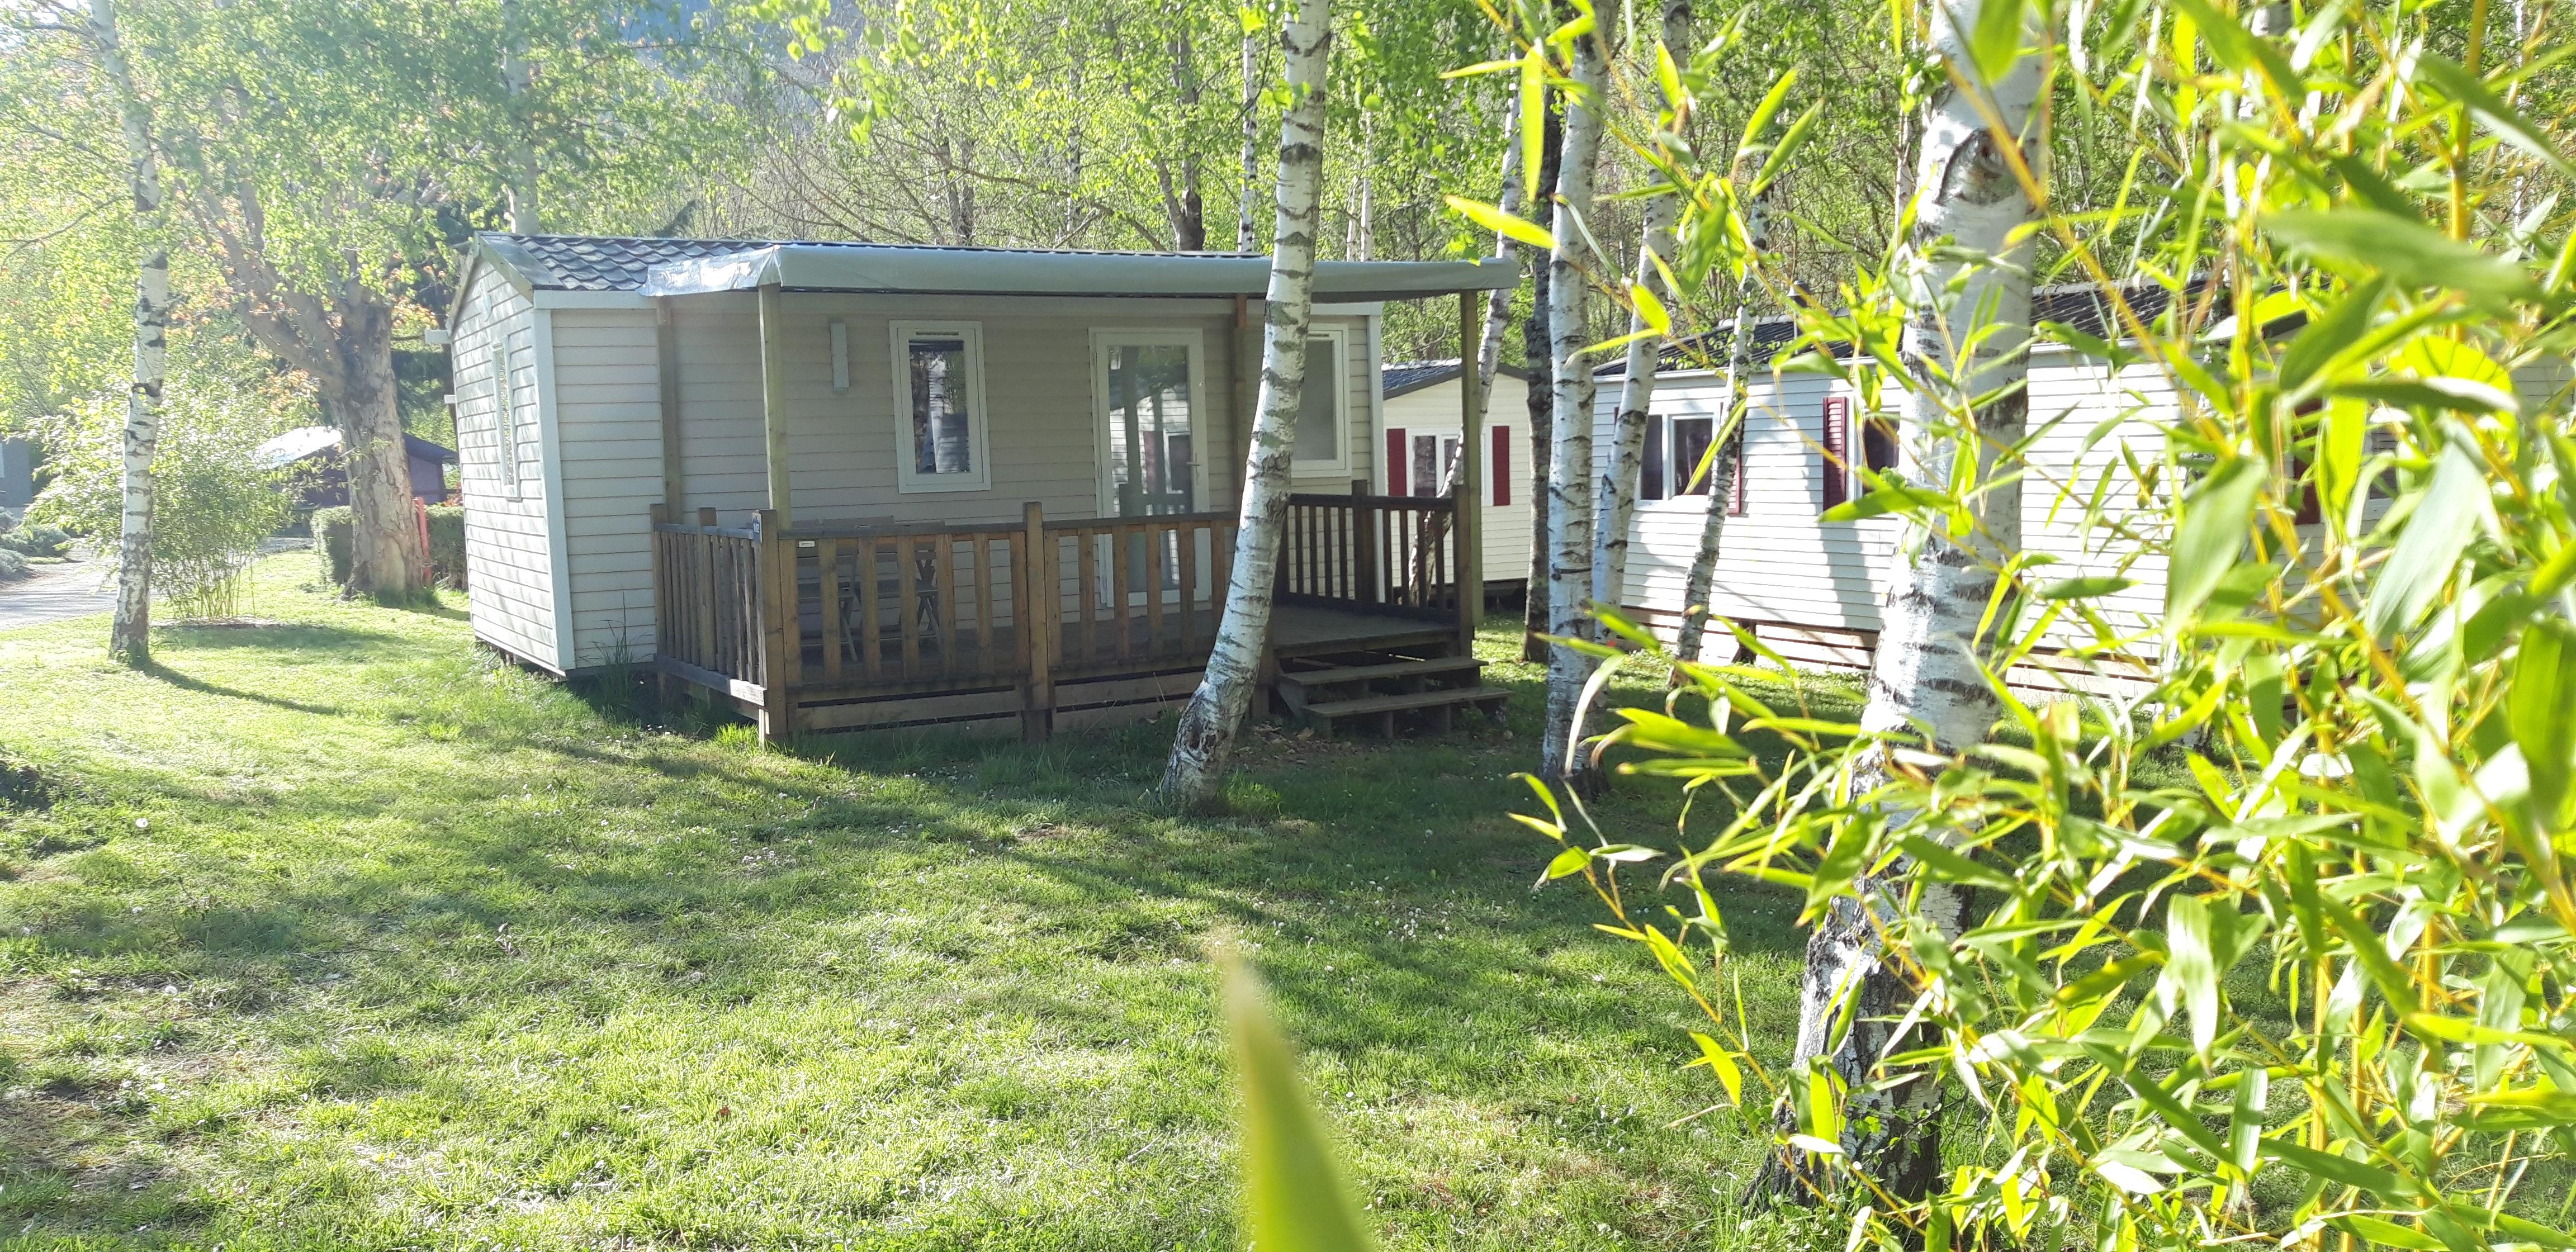 Location - Mobilhome Confort+ (2 Chambres) - Flower Camping Les Gorges de l'Aveyron